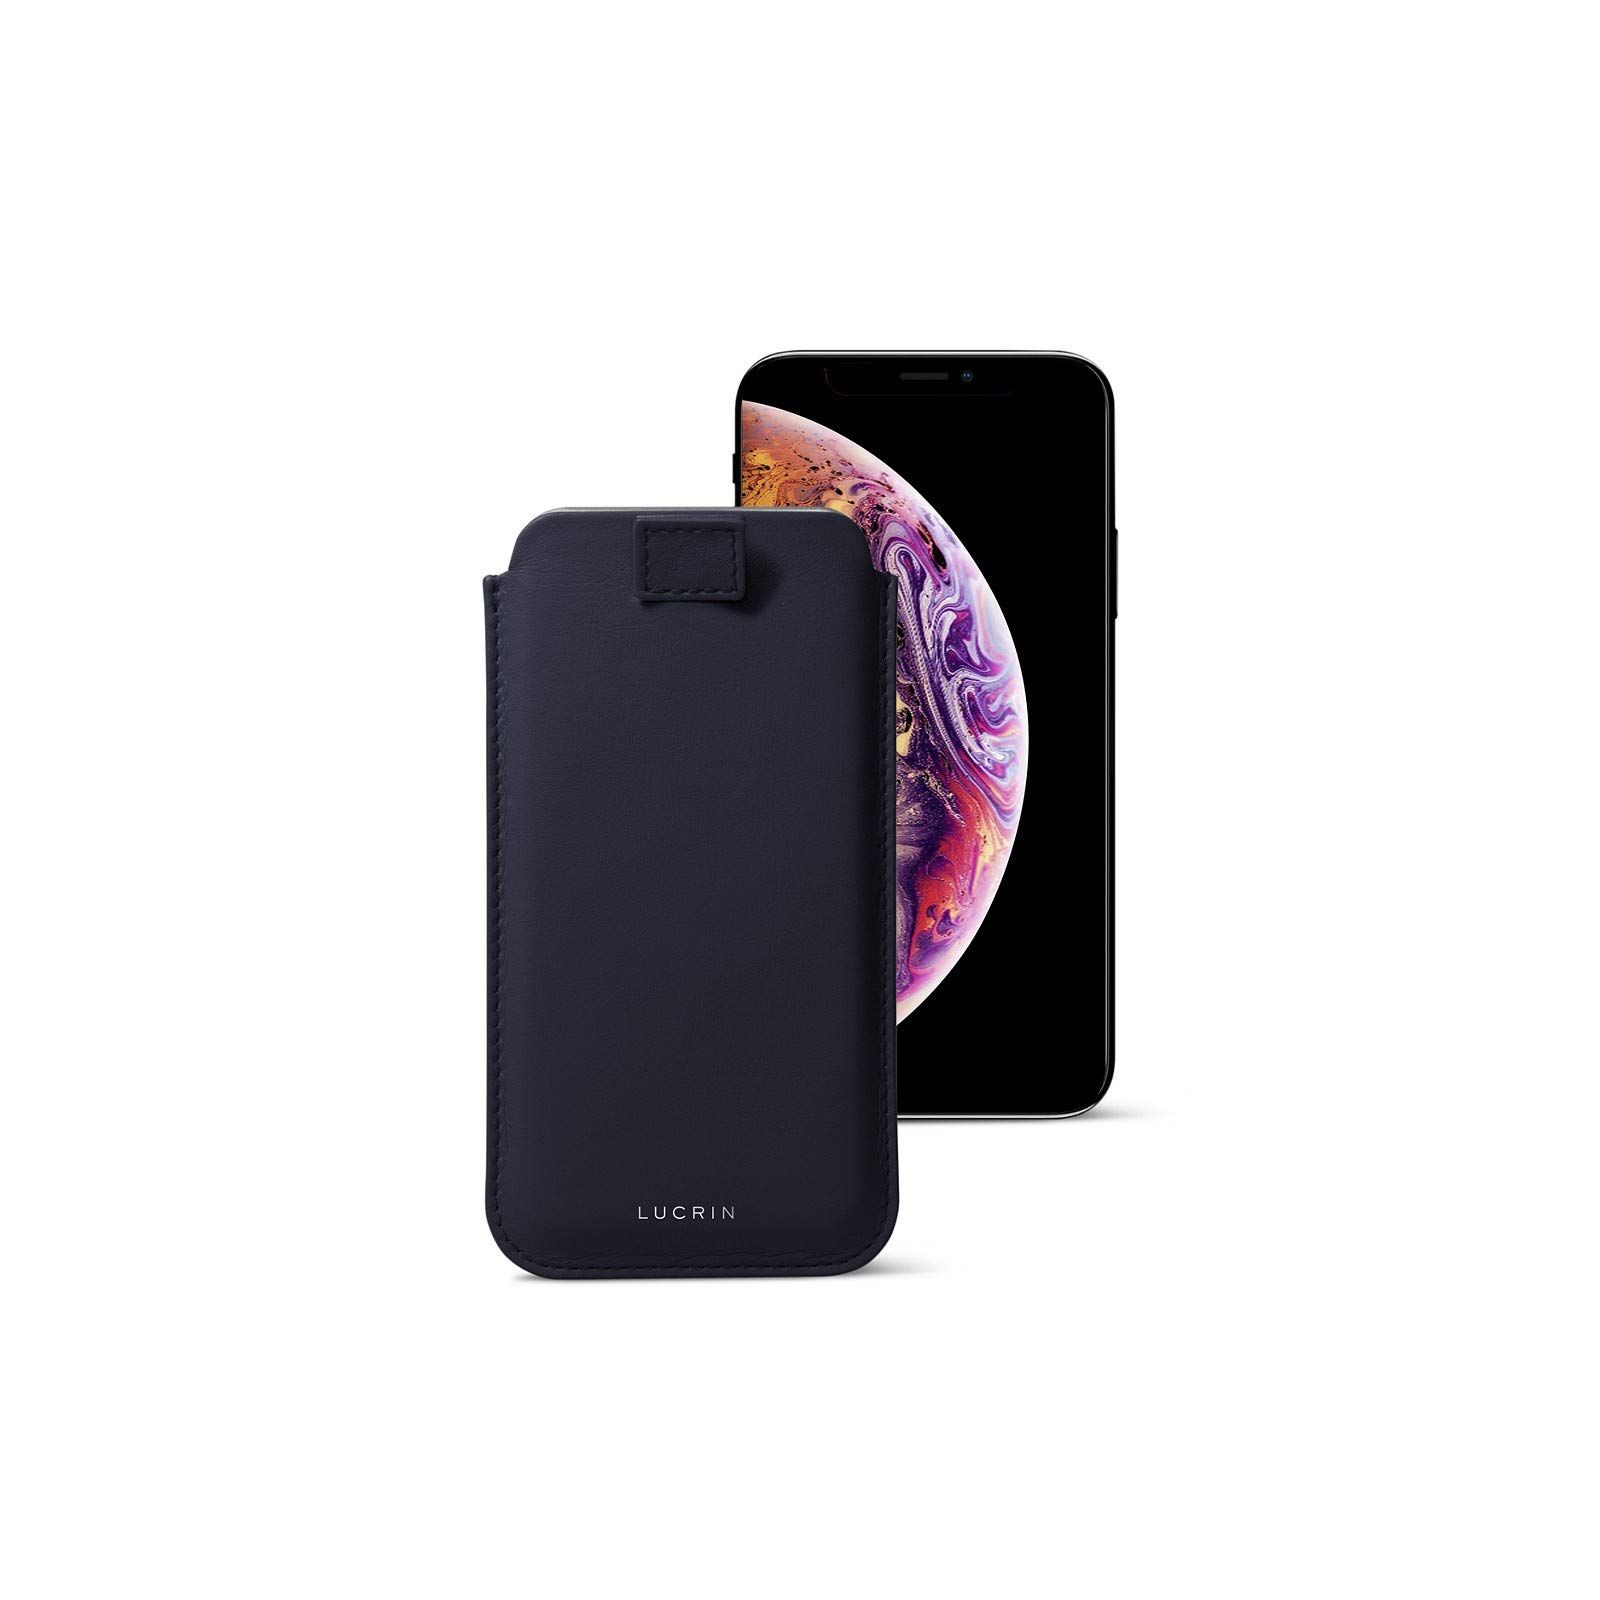 Lucrin - Pull Tab Slim Sleeve Case Compatible with iPhone Xs/iPhone X and Wireless Charging - Navy Blue - Genuine Leather